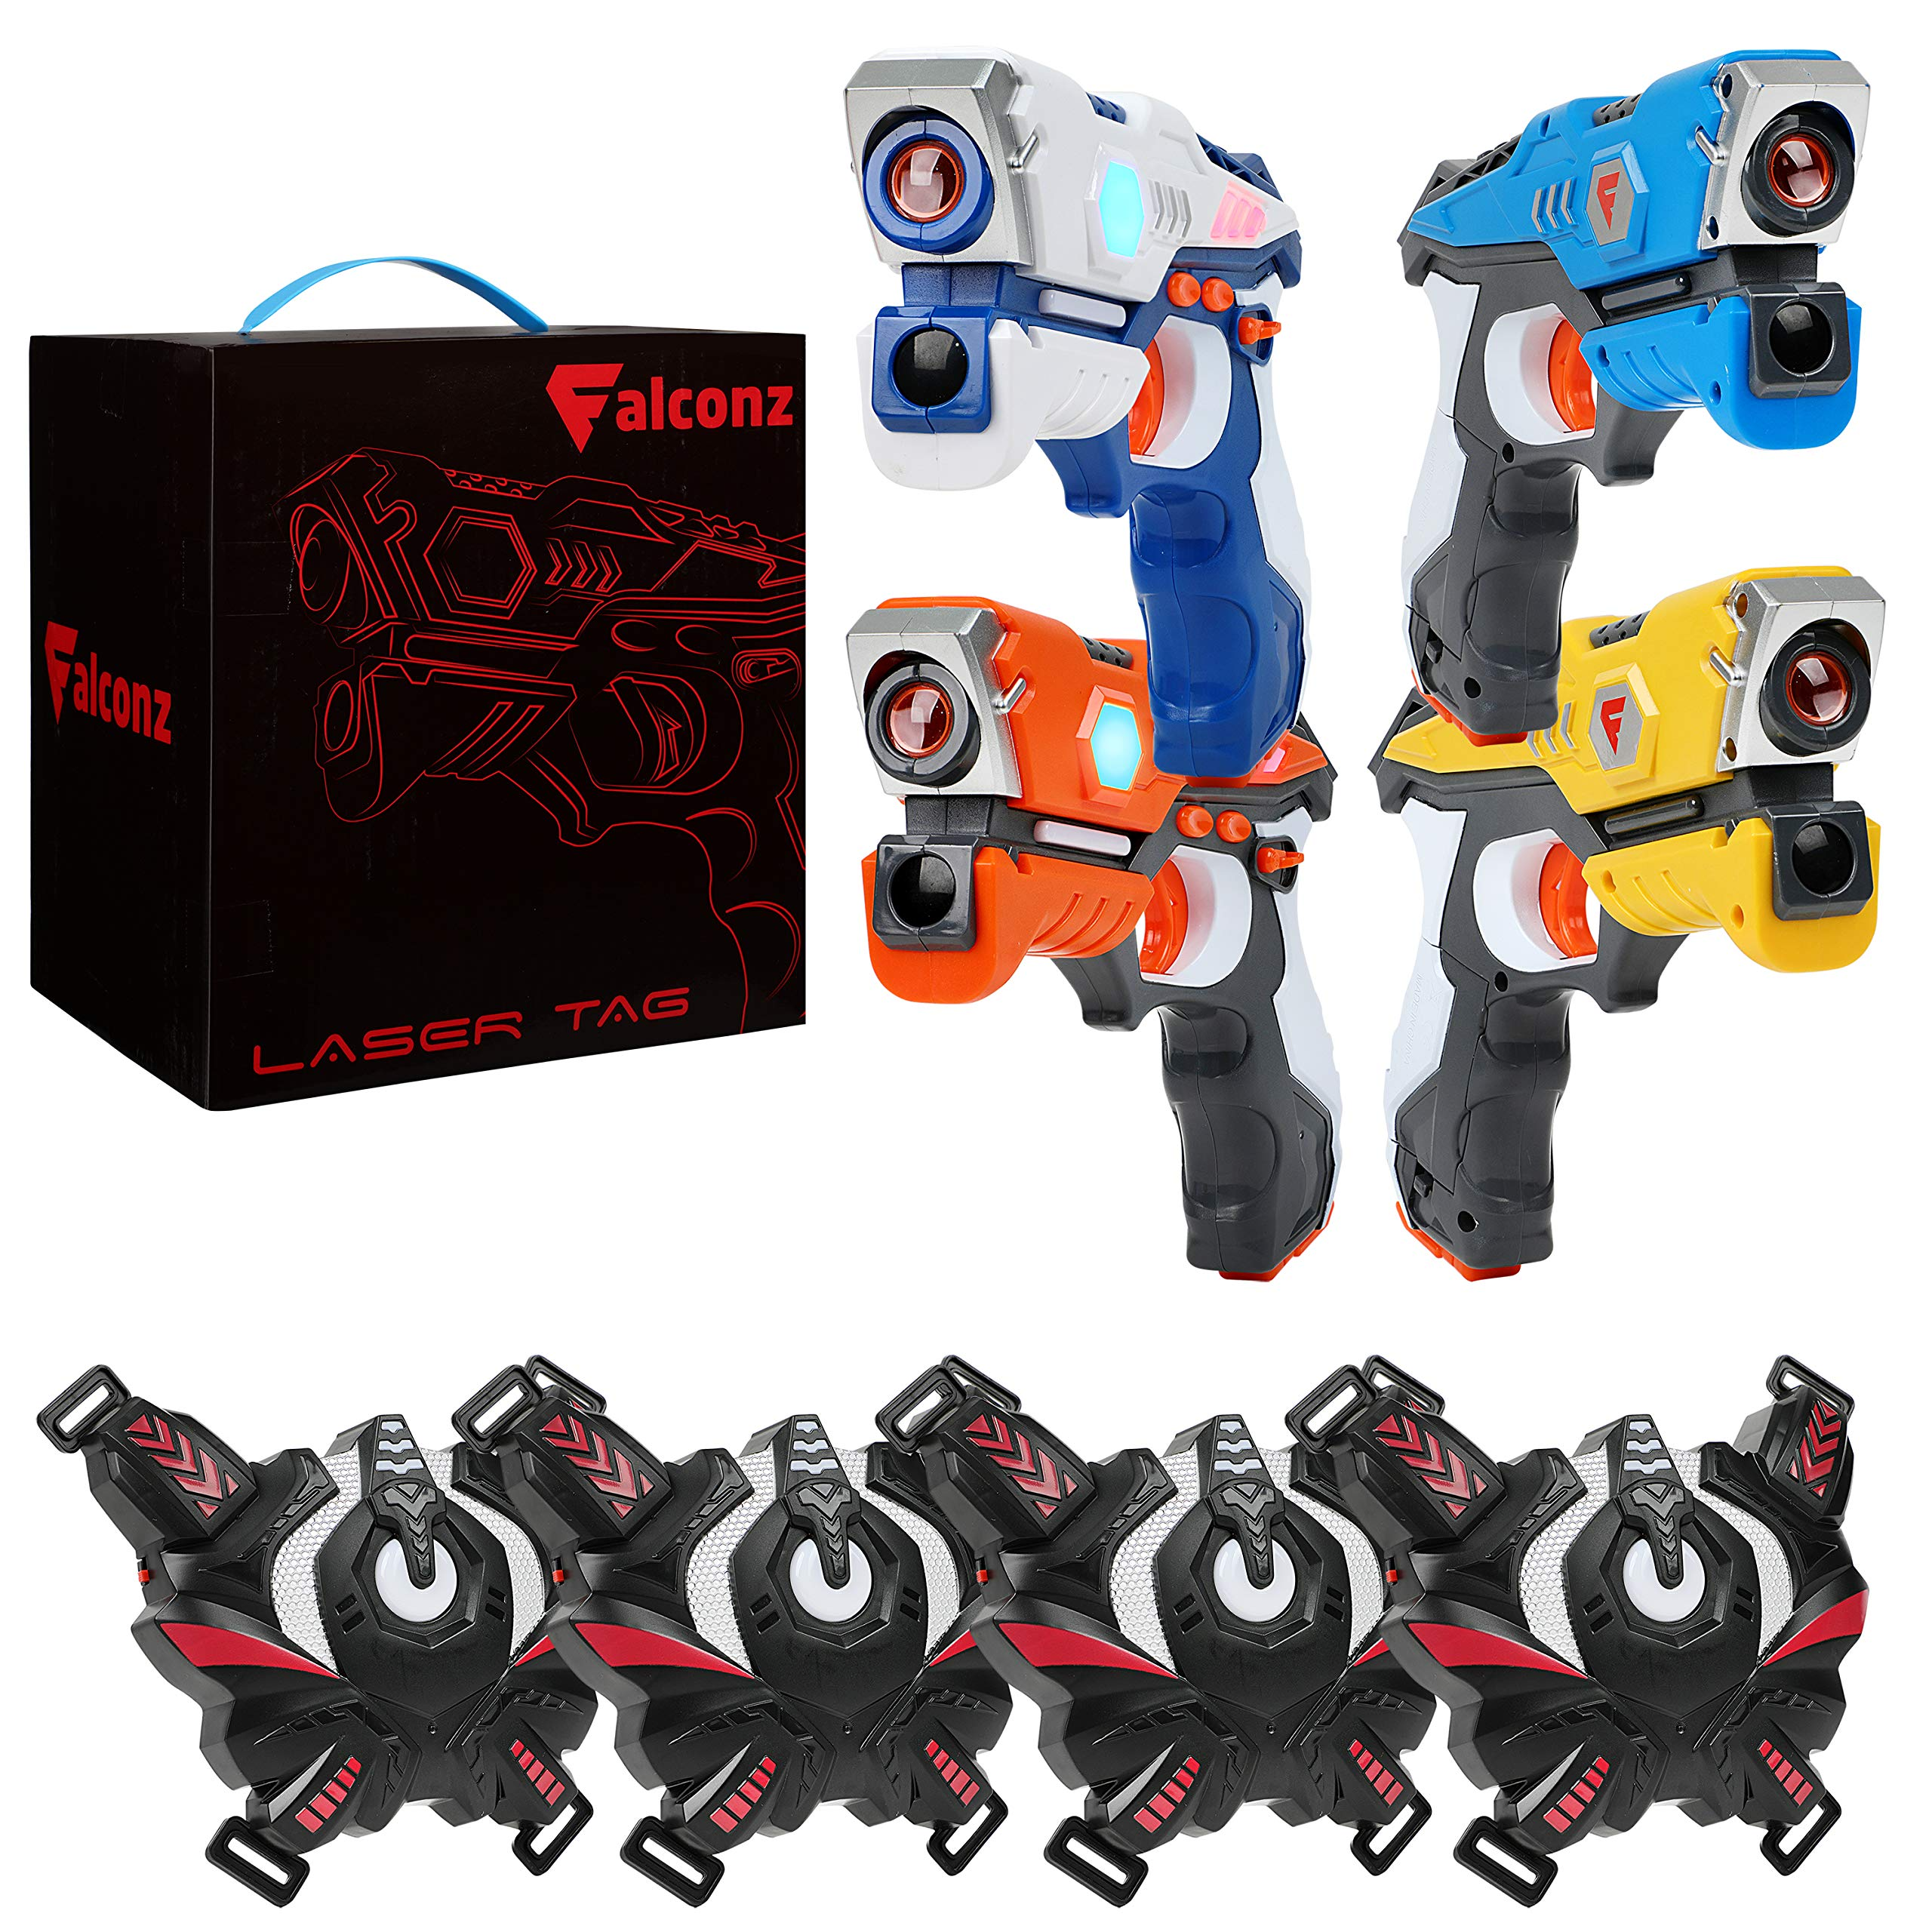 Falconz 4 Player Laser Tag Set with 4 Guns and Vests - Great Indoor or Outdoor Fun for Both Kids and Adults